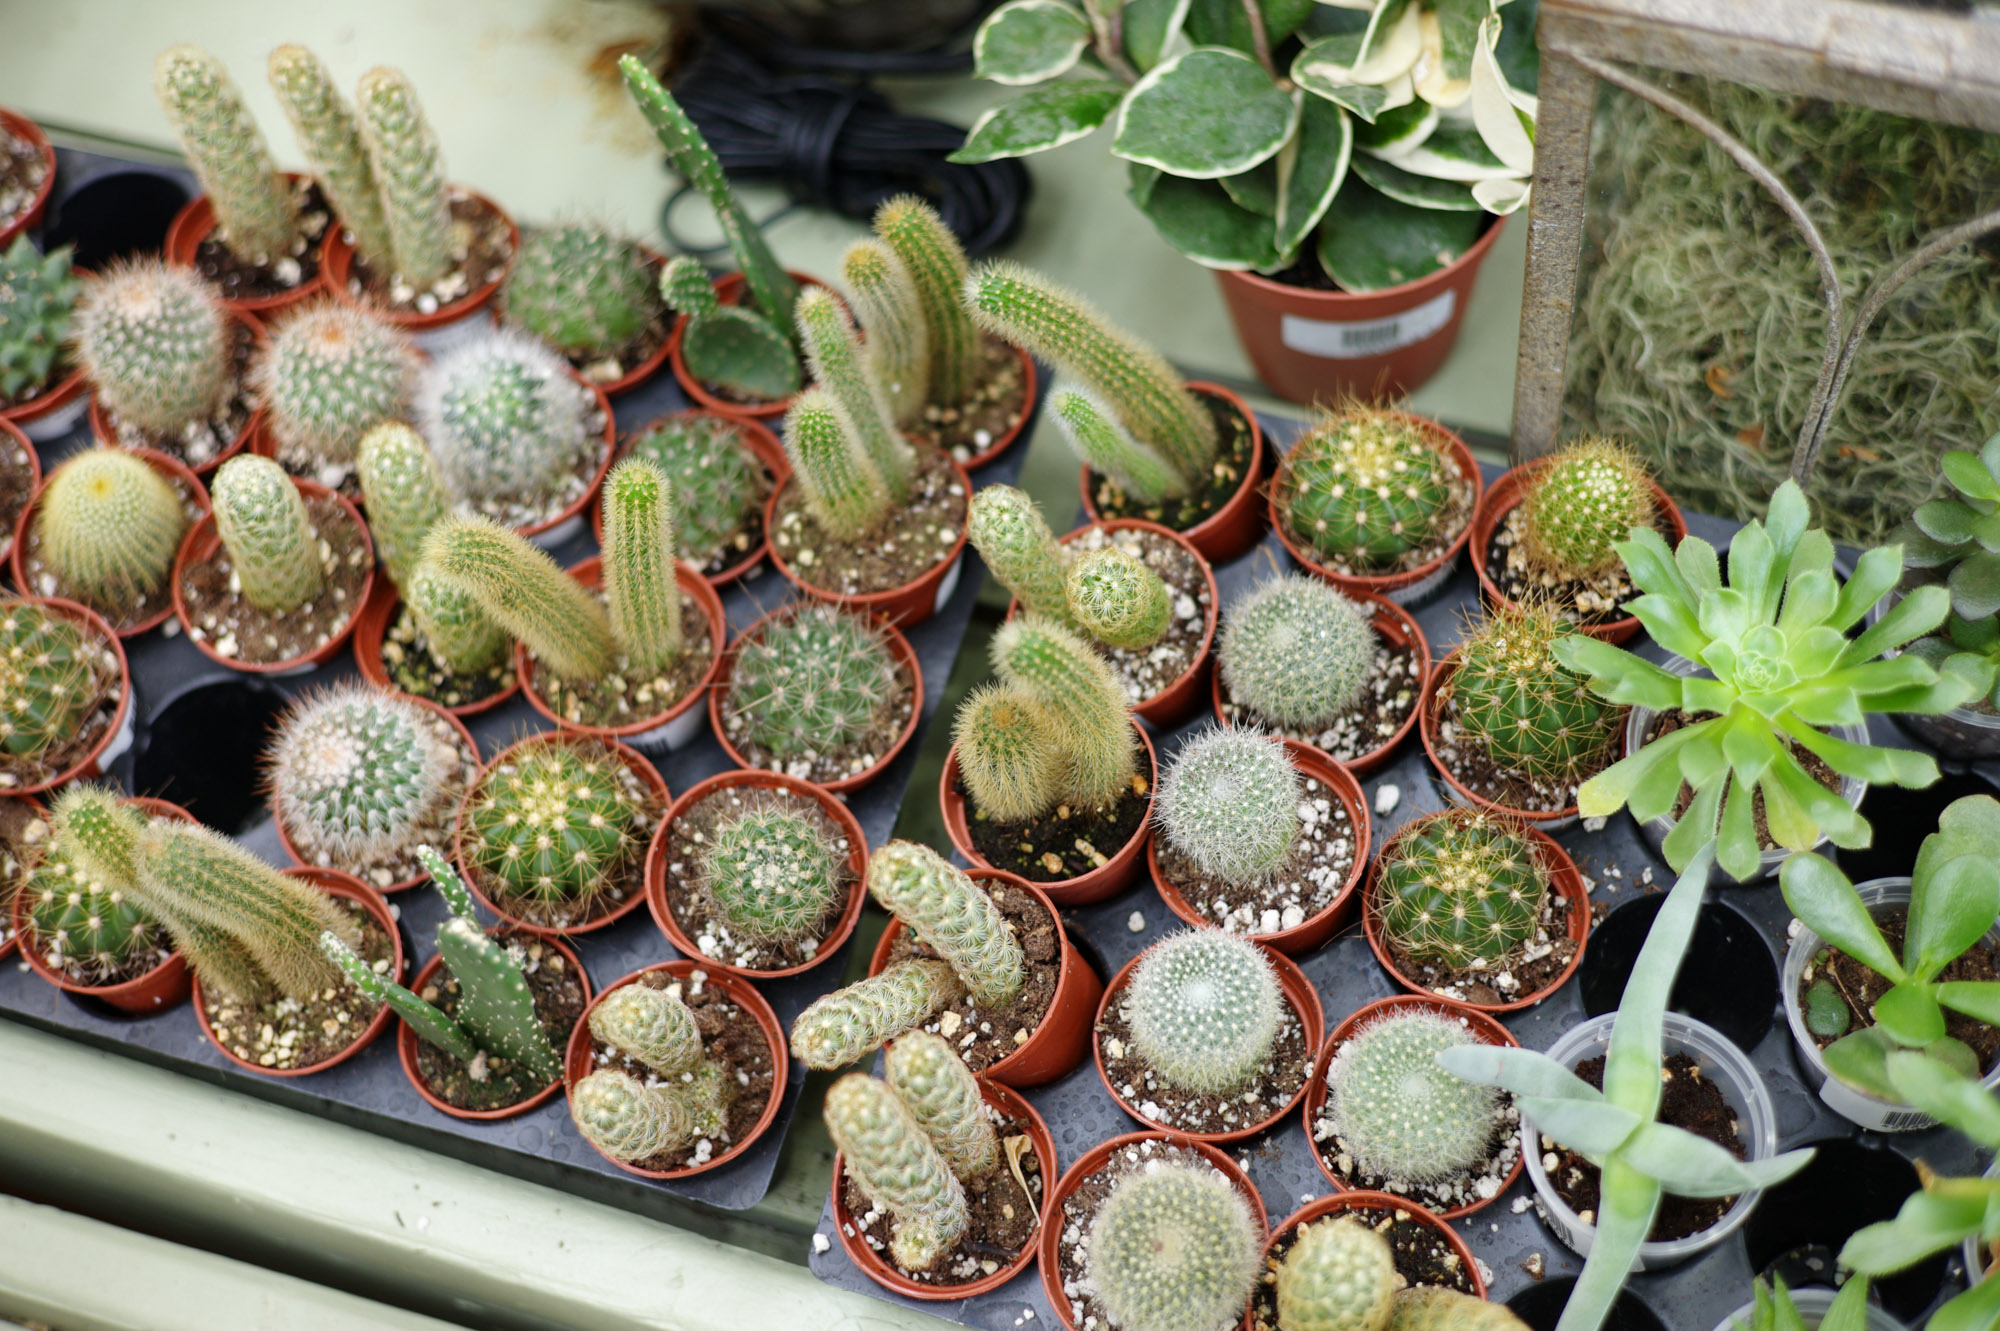 Houseplants For Sale In Bowie Md Patuxent Nursery Serving Md